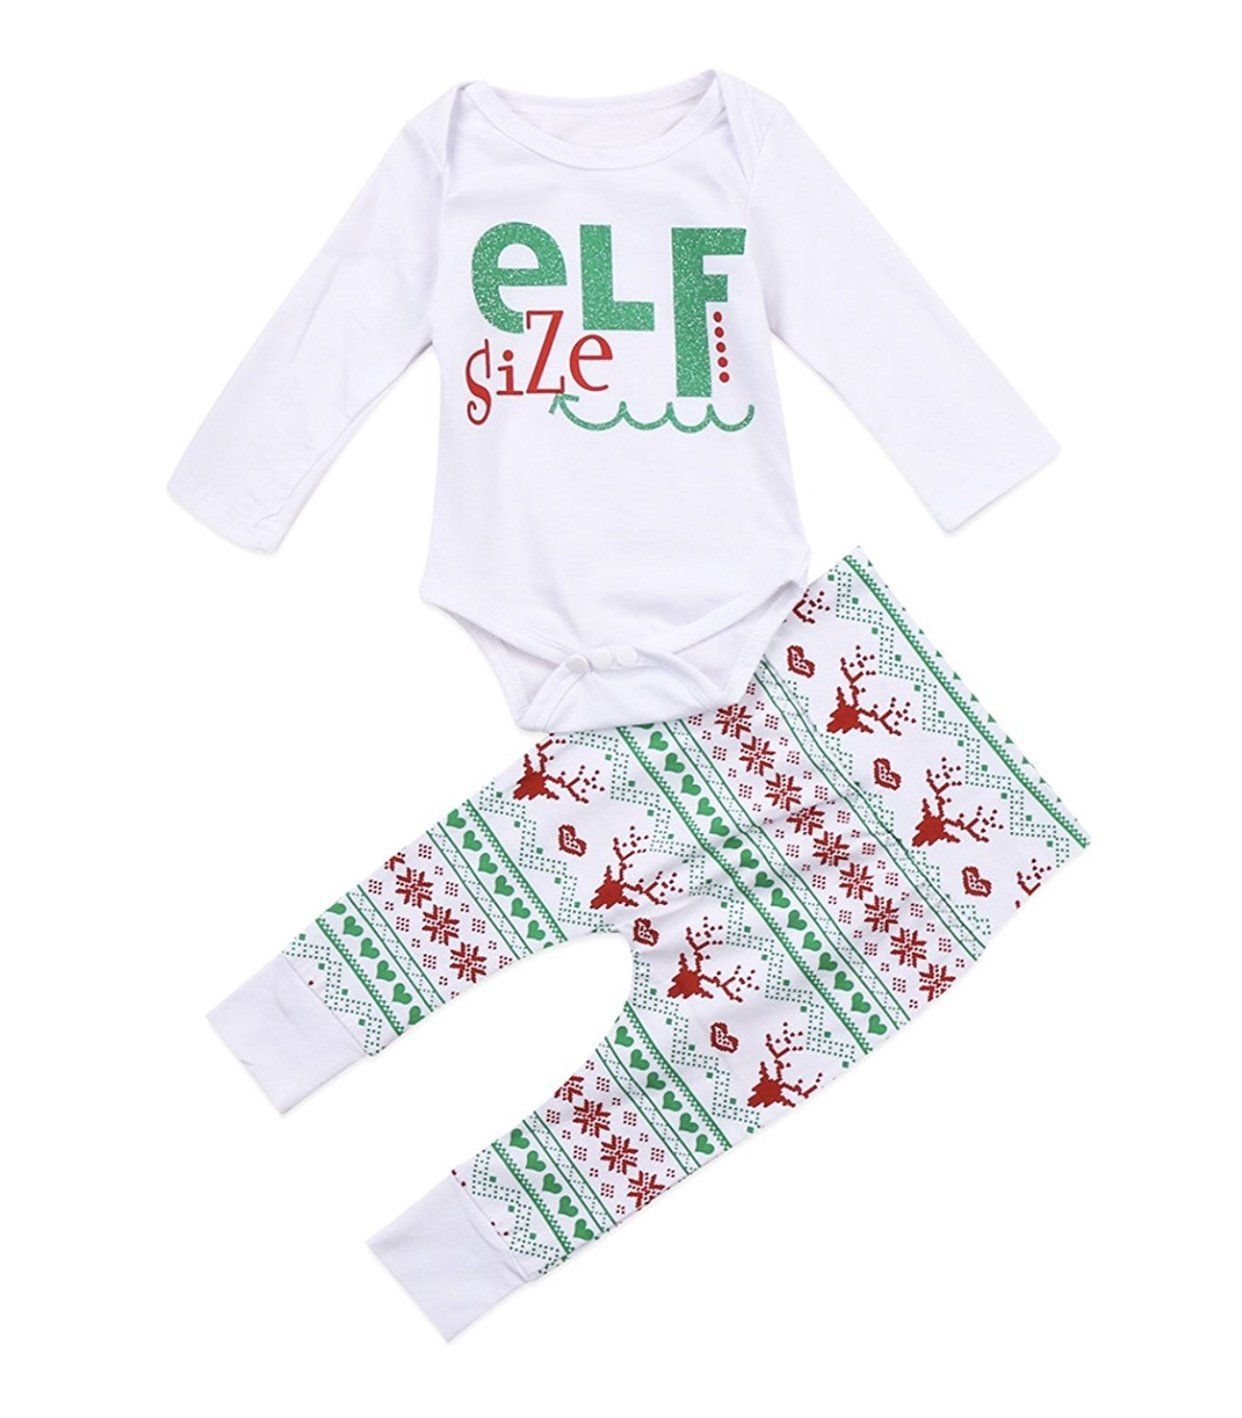 Baby Girl Baby Boy Newborn Christmas Holiday Outfit Elf Size Long